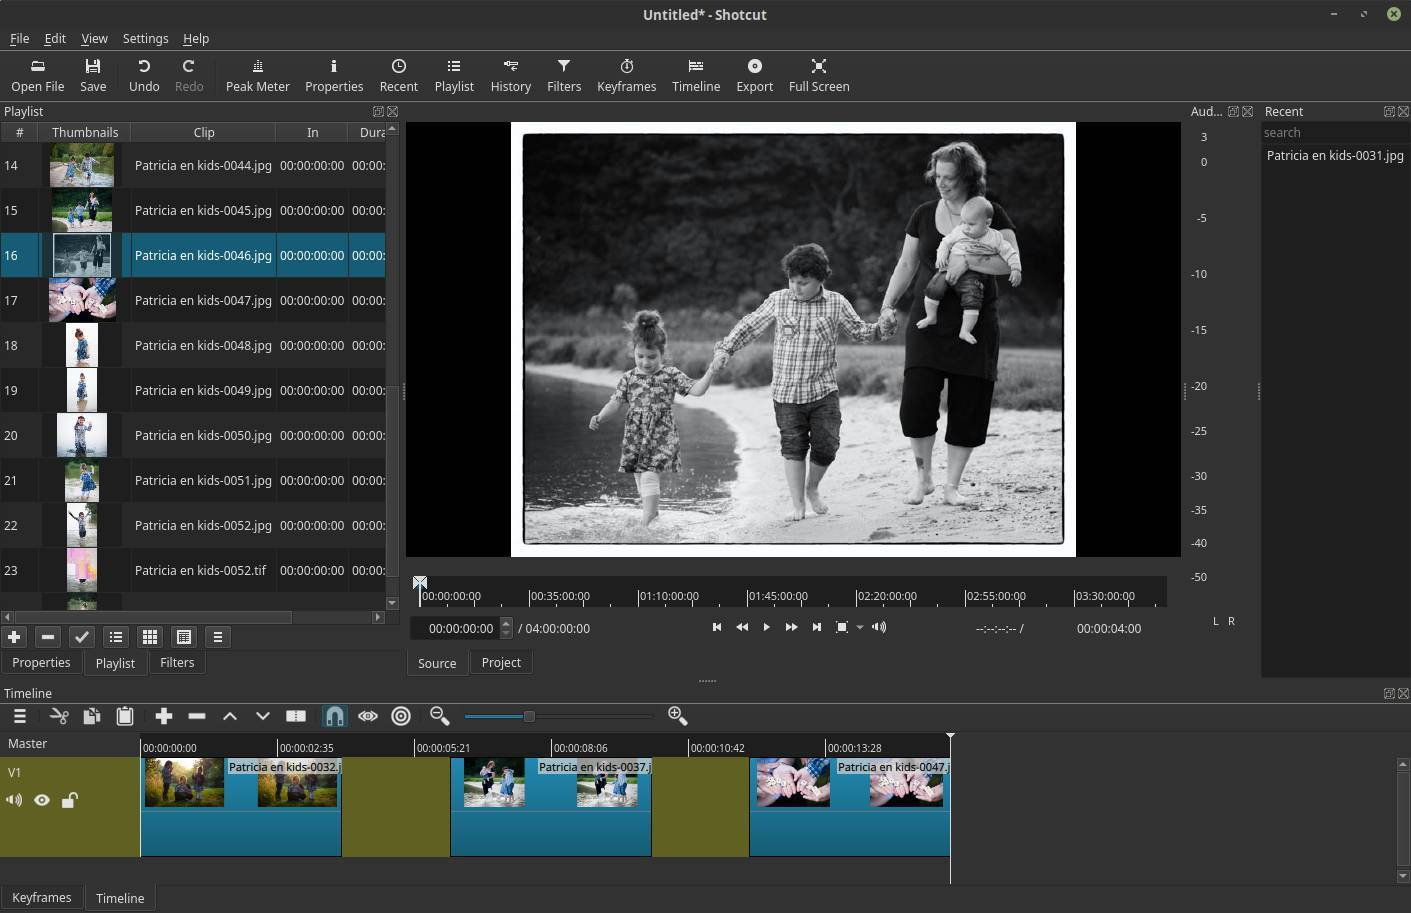 New features and improvements in Shotcut 19.09 video editor - Real Linux User